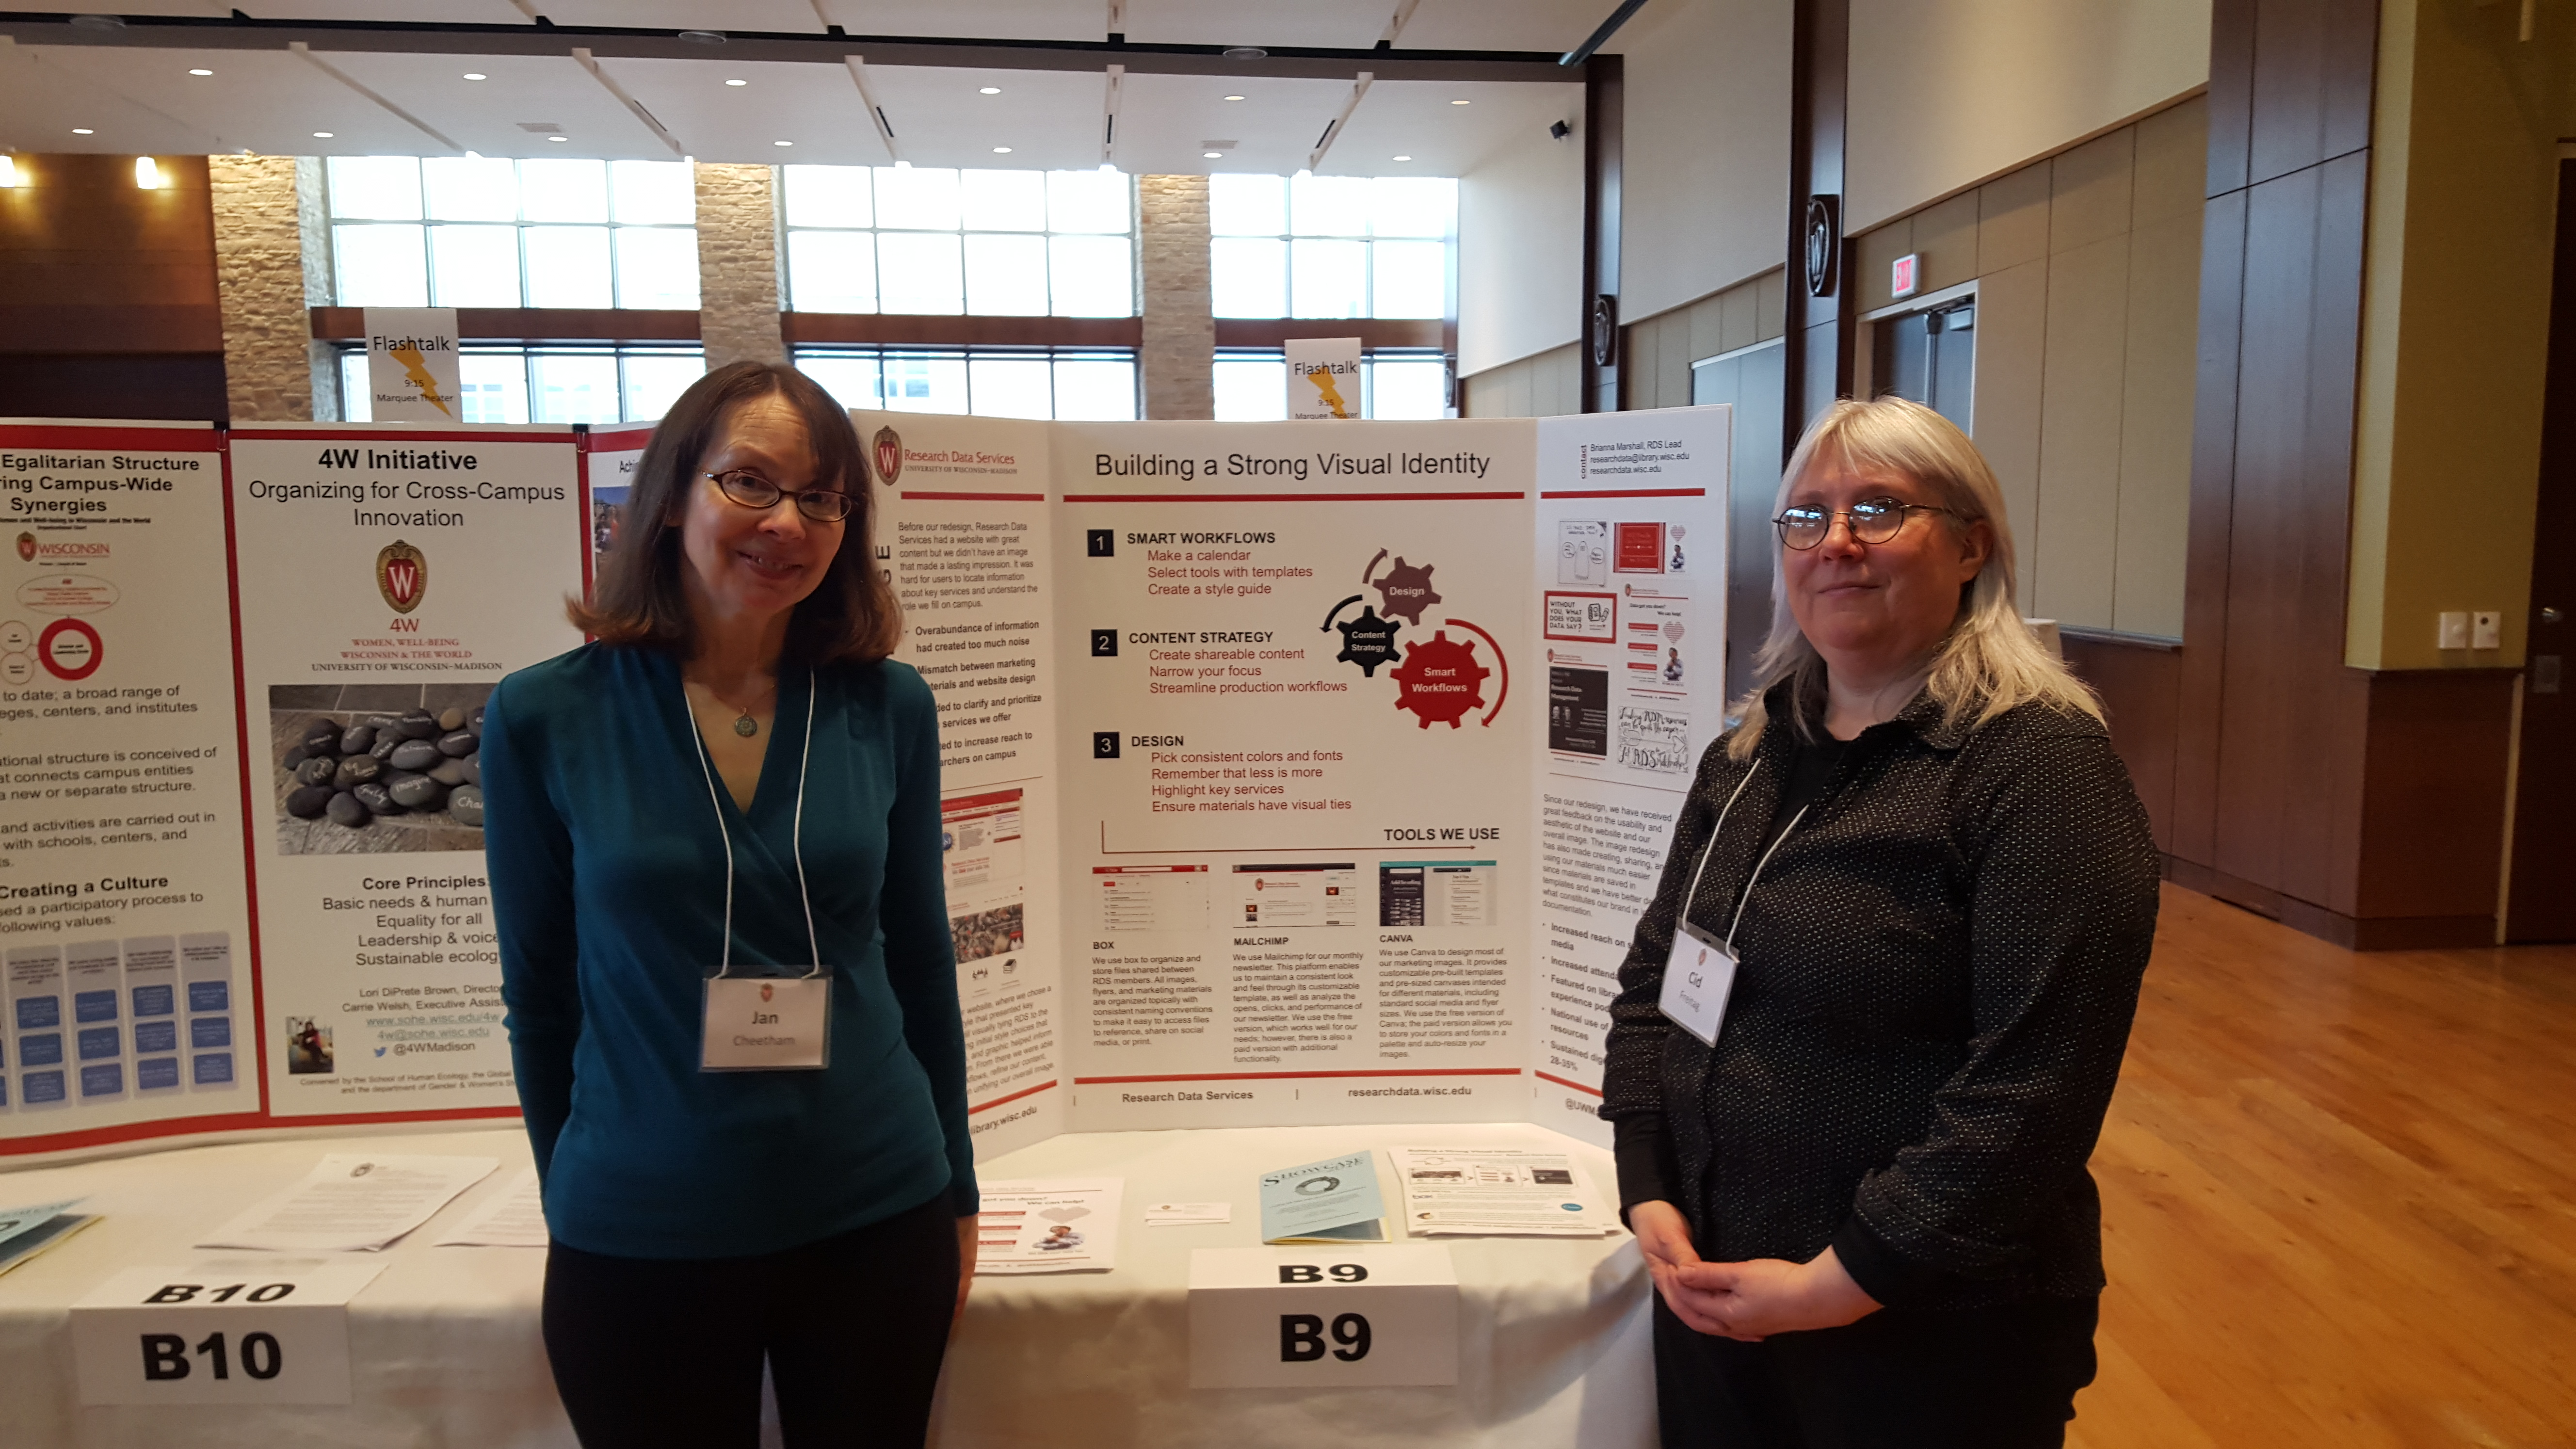 Jan Cheetham and Cid Freitag at the Research Data Services Website poster